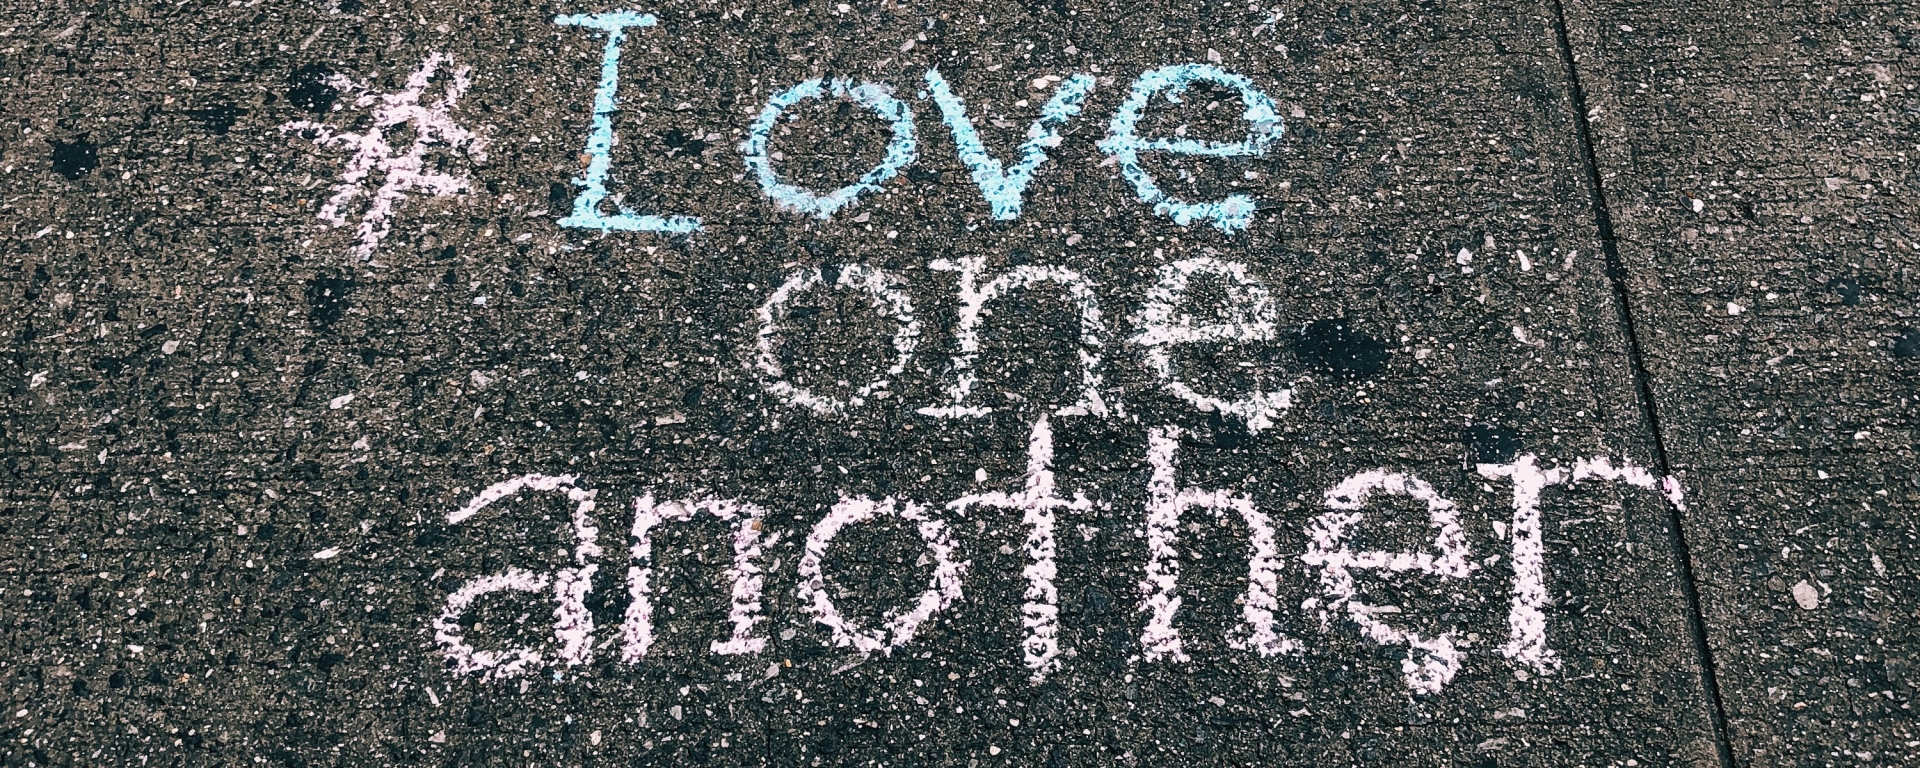 #loveoneanother